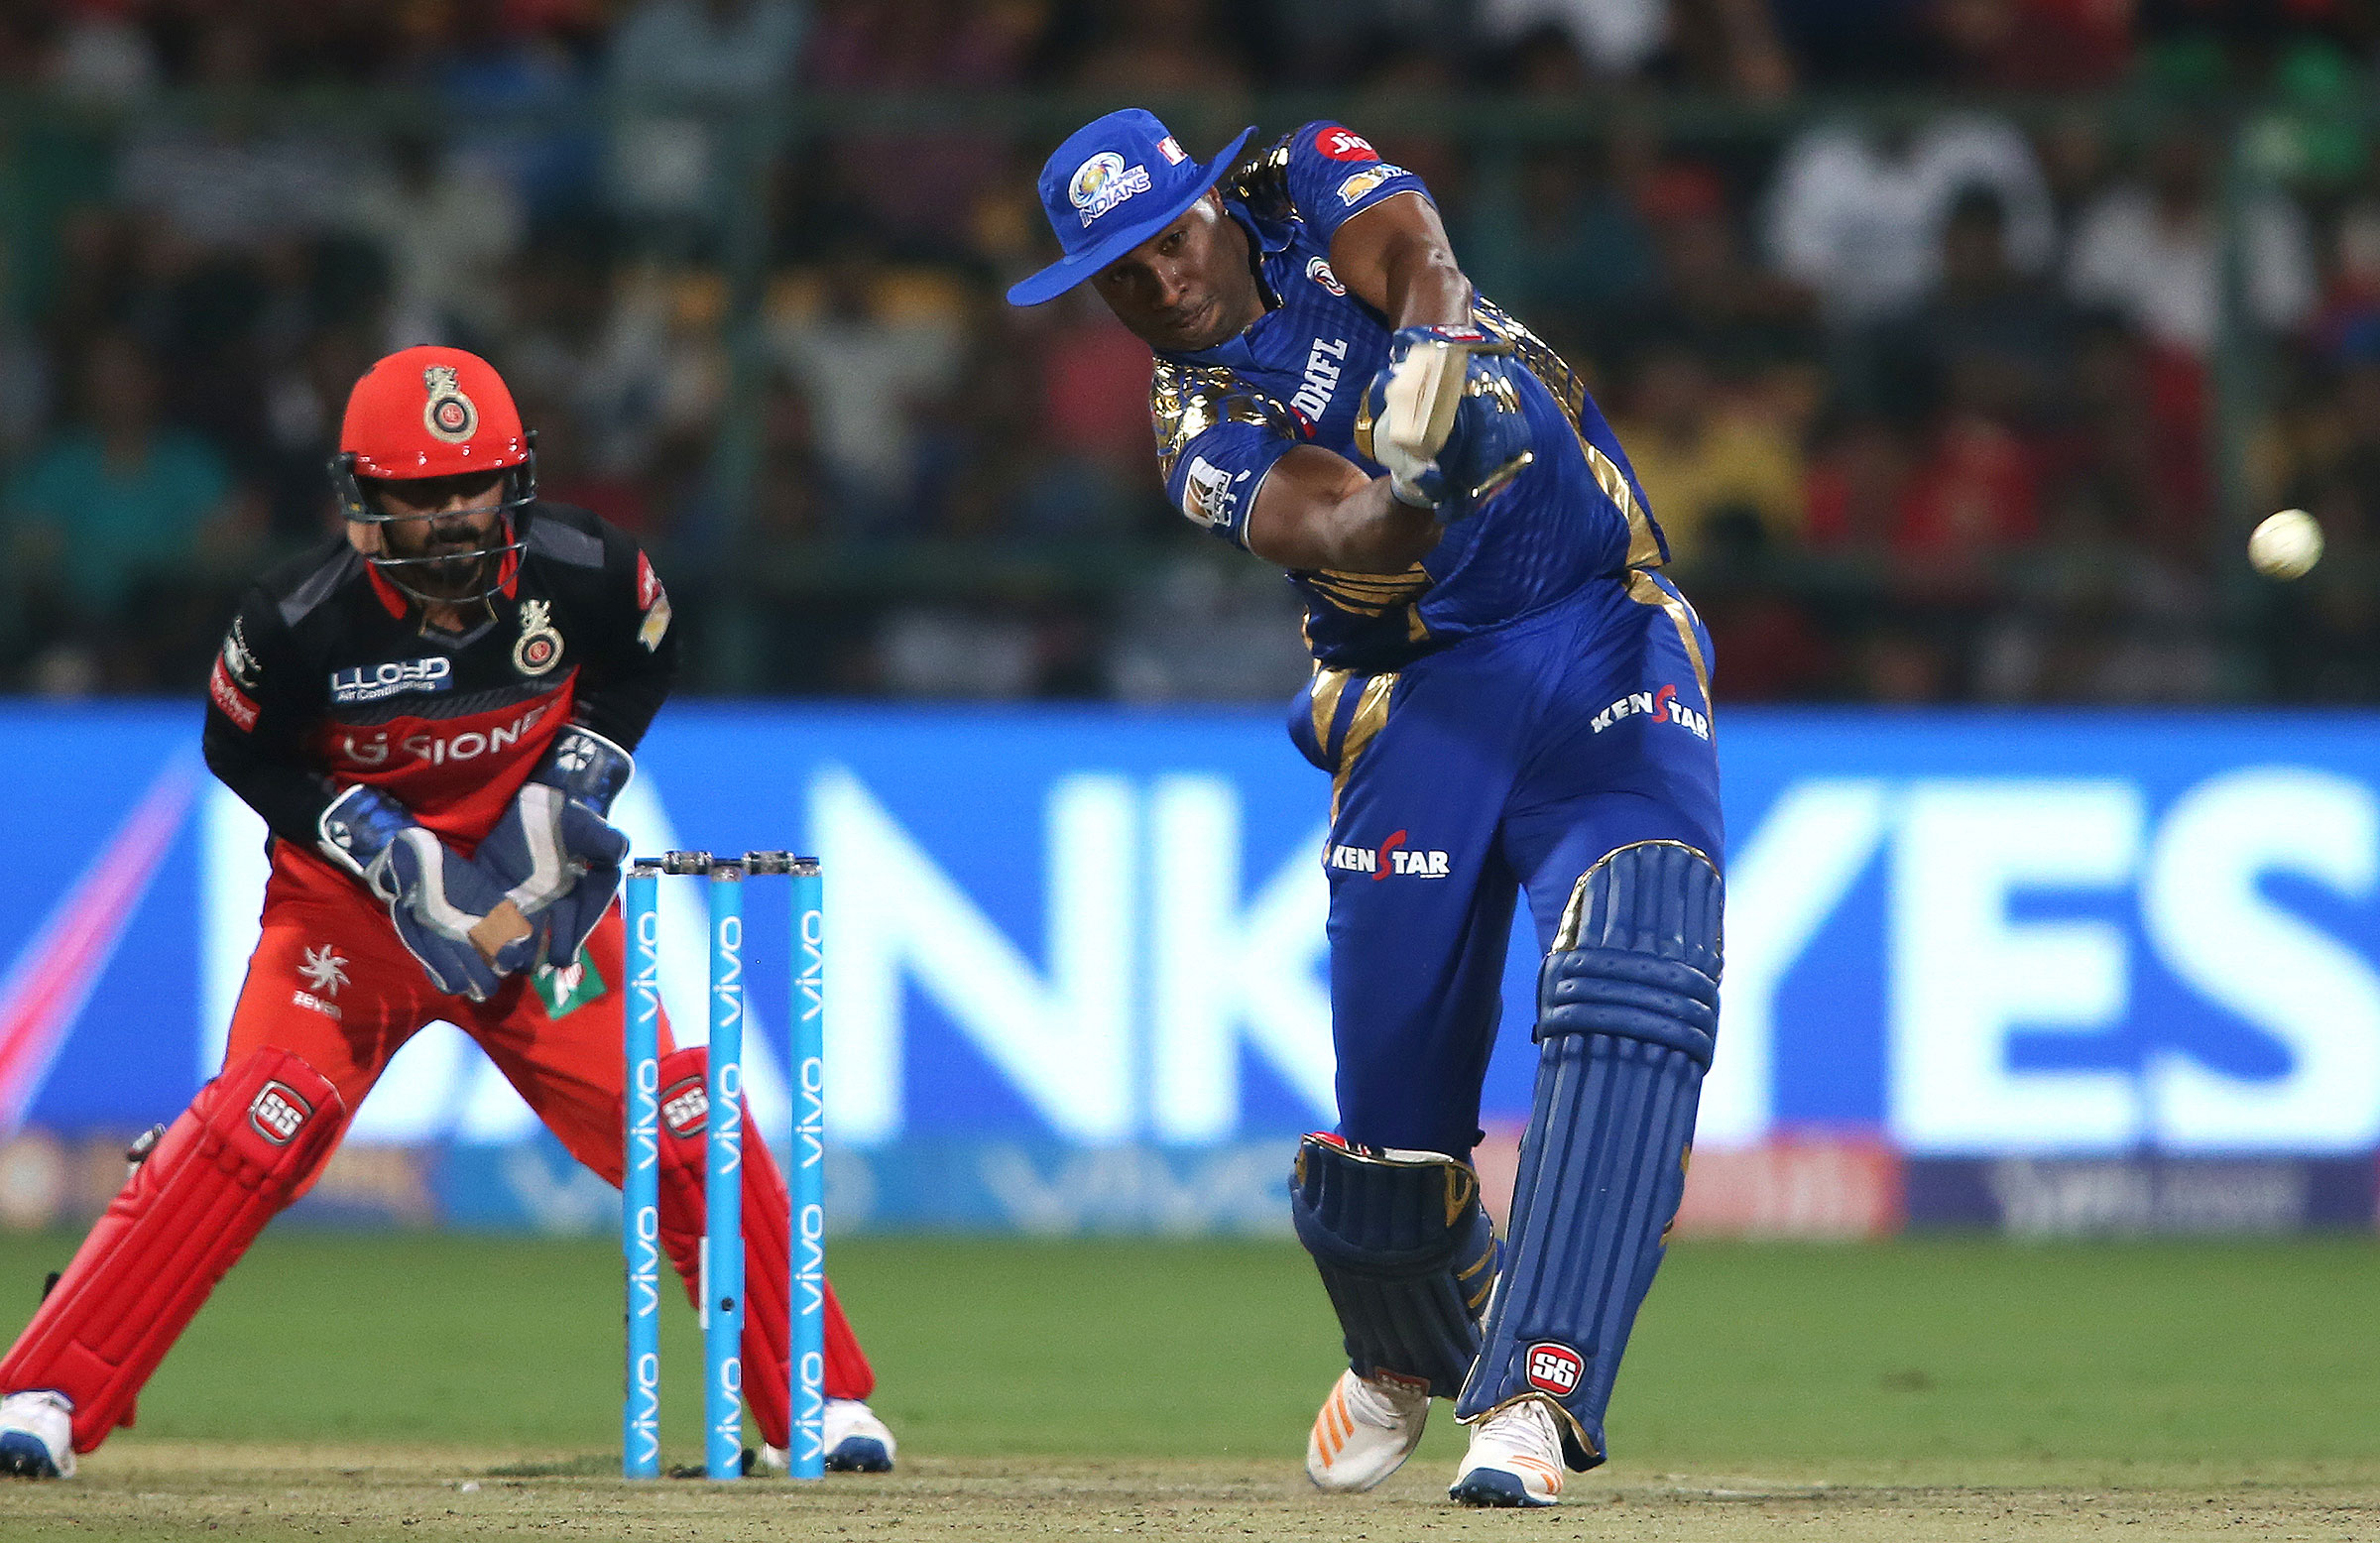 Pollard blasts another six during his match-winning knock against RCB // BCCI